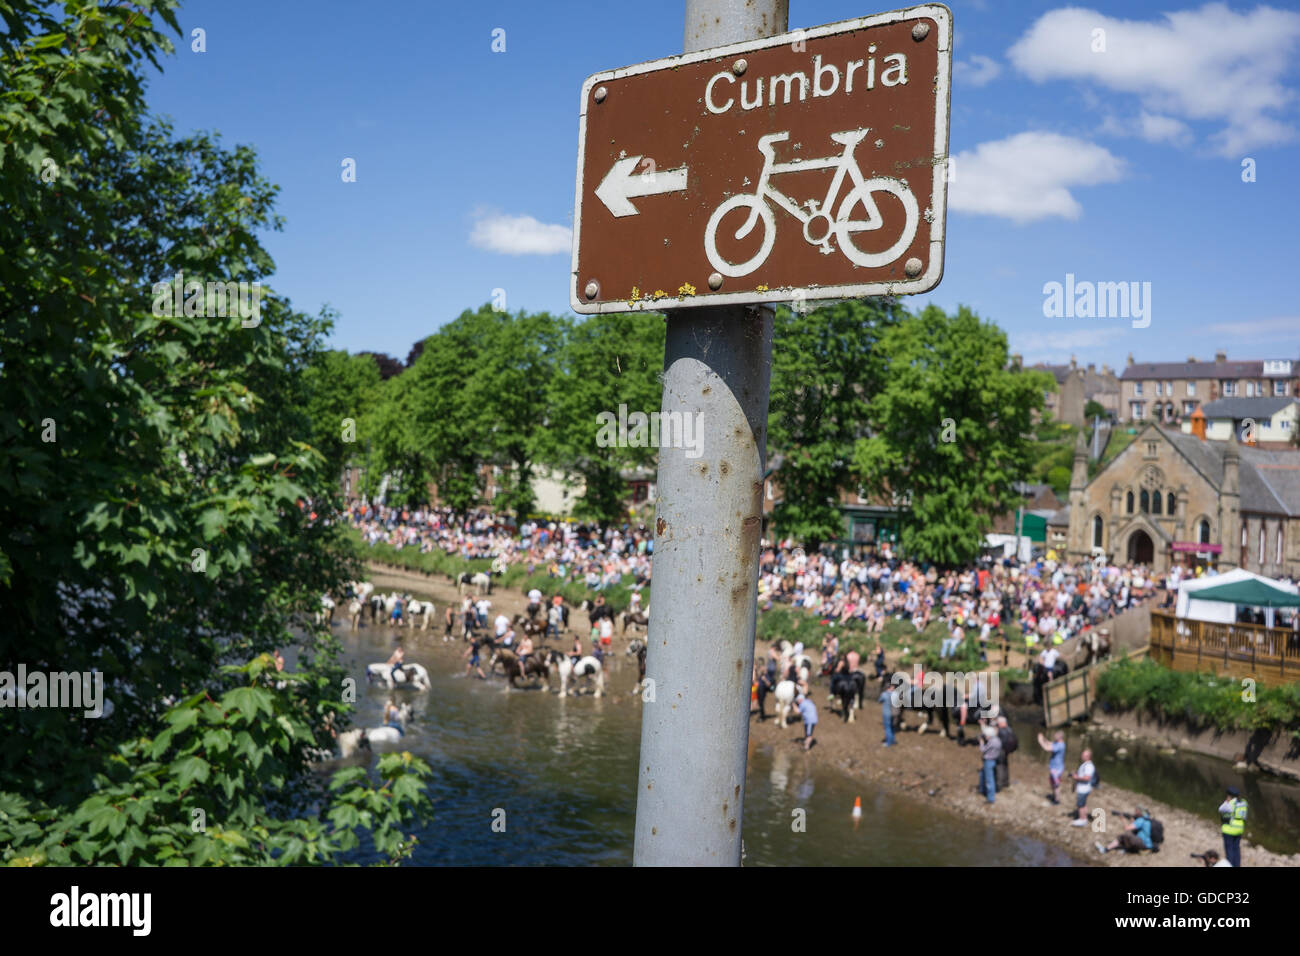 A cycleway sign in Appleby, Cumbria - Stock Image